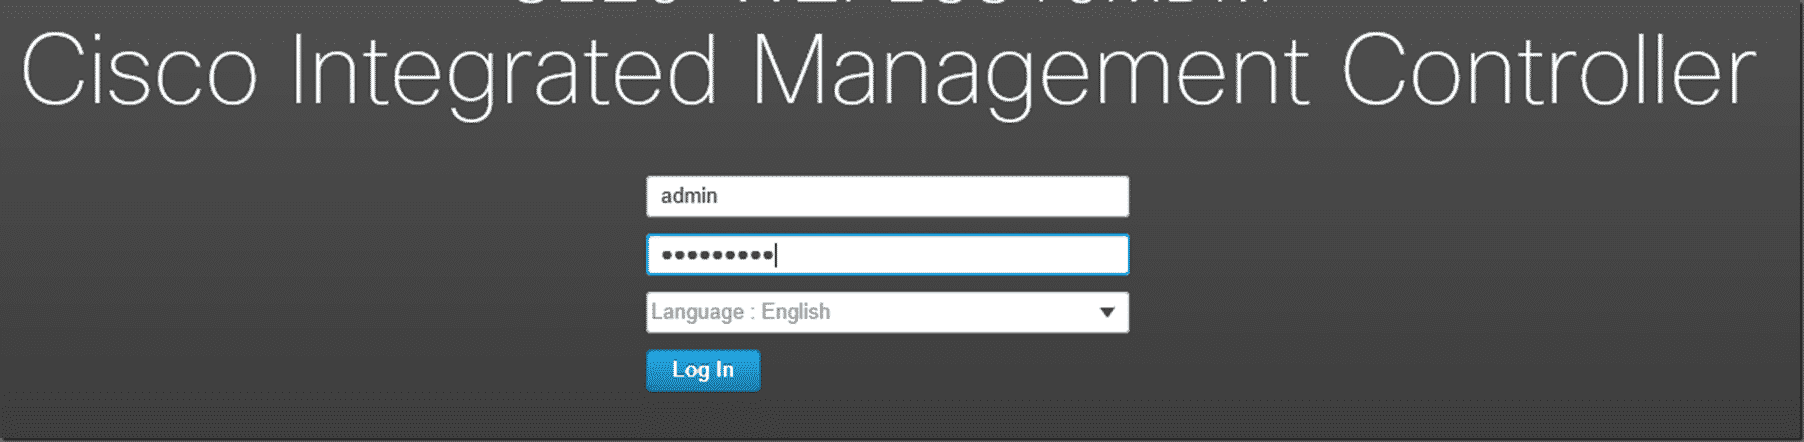 Log into the Cisco Integrated Manager Controller UI.